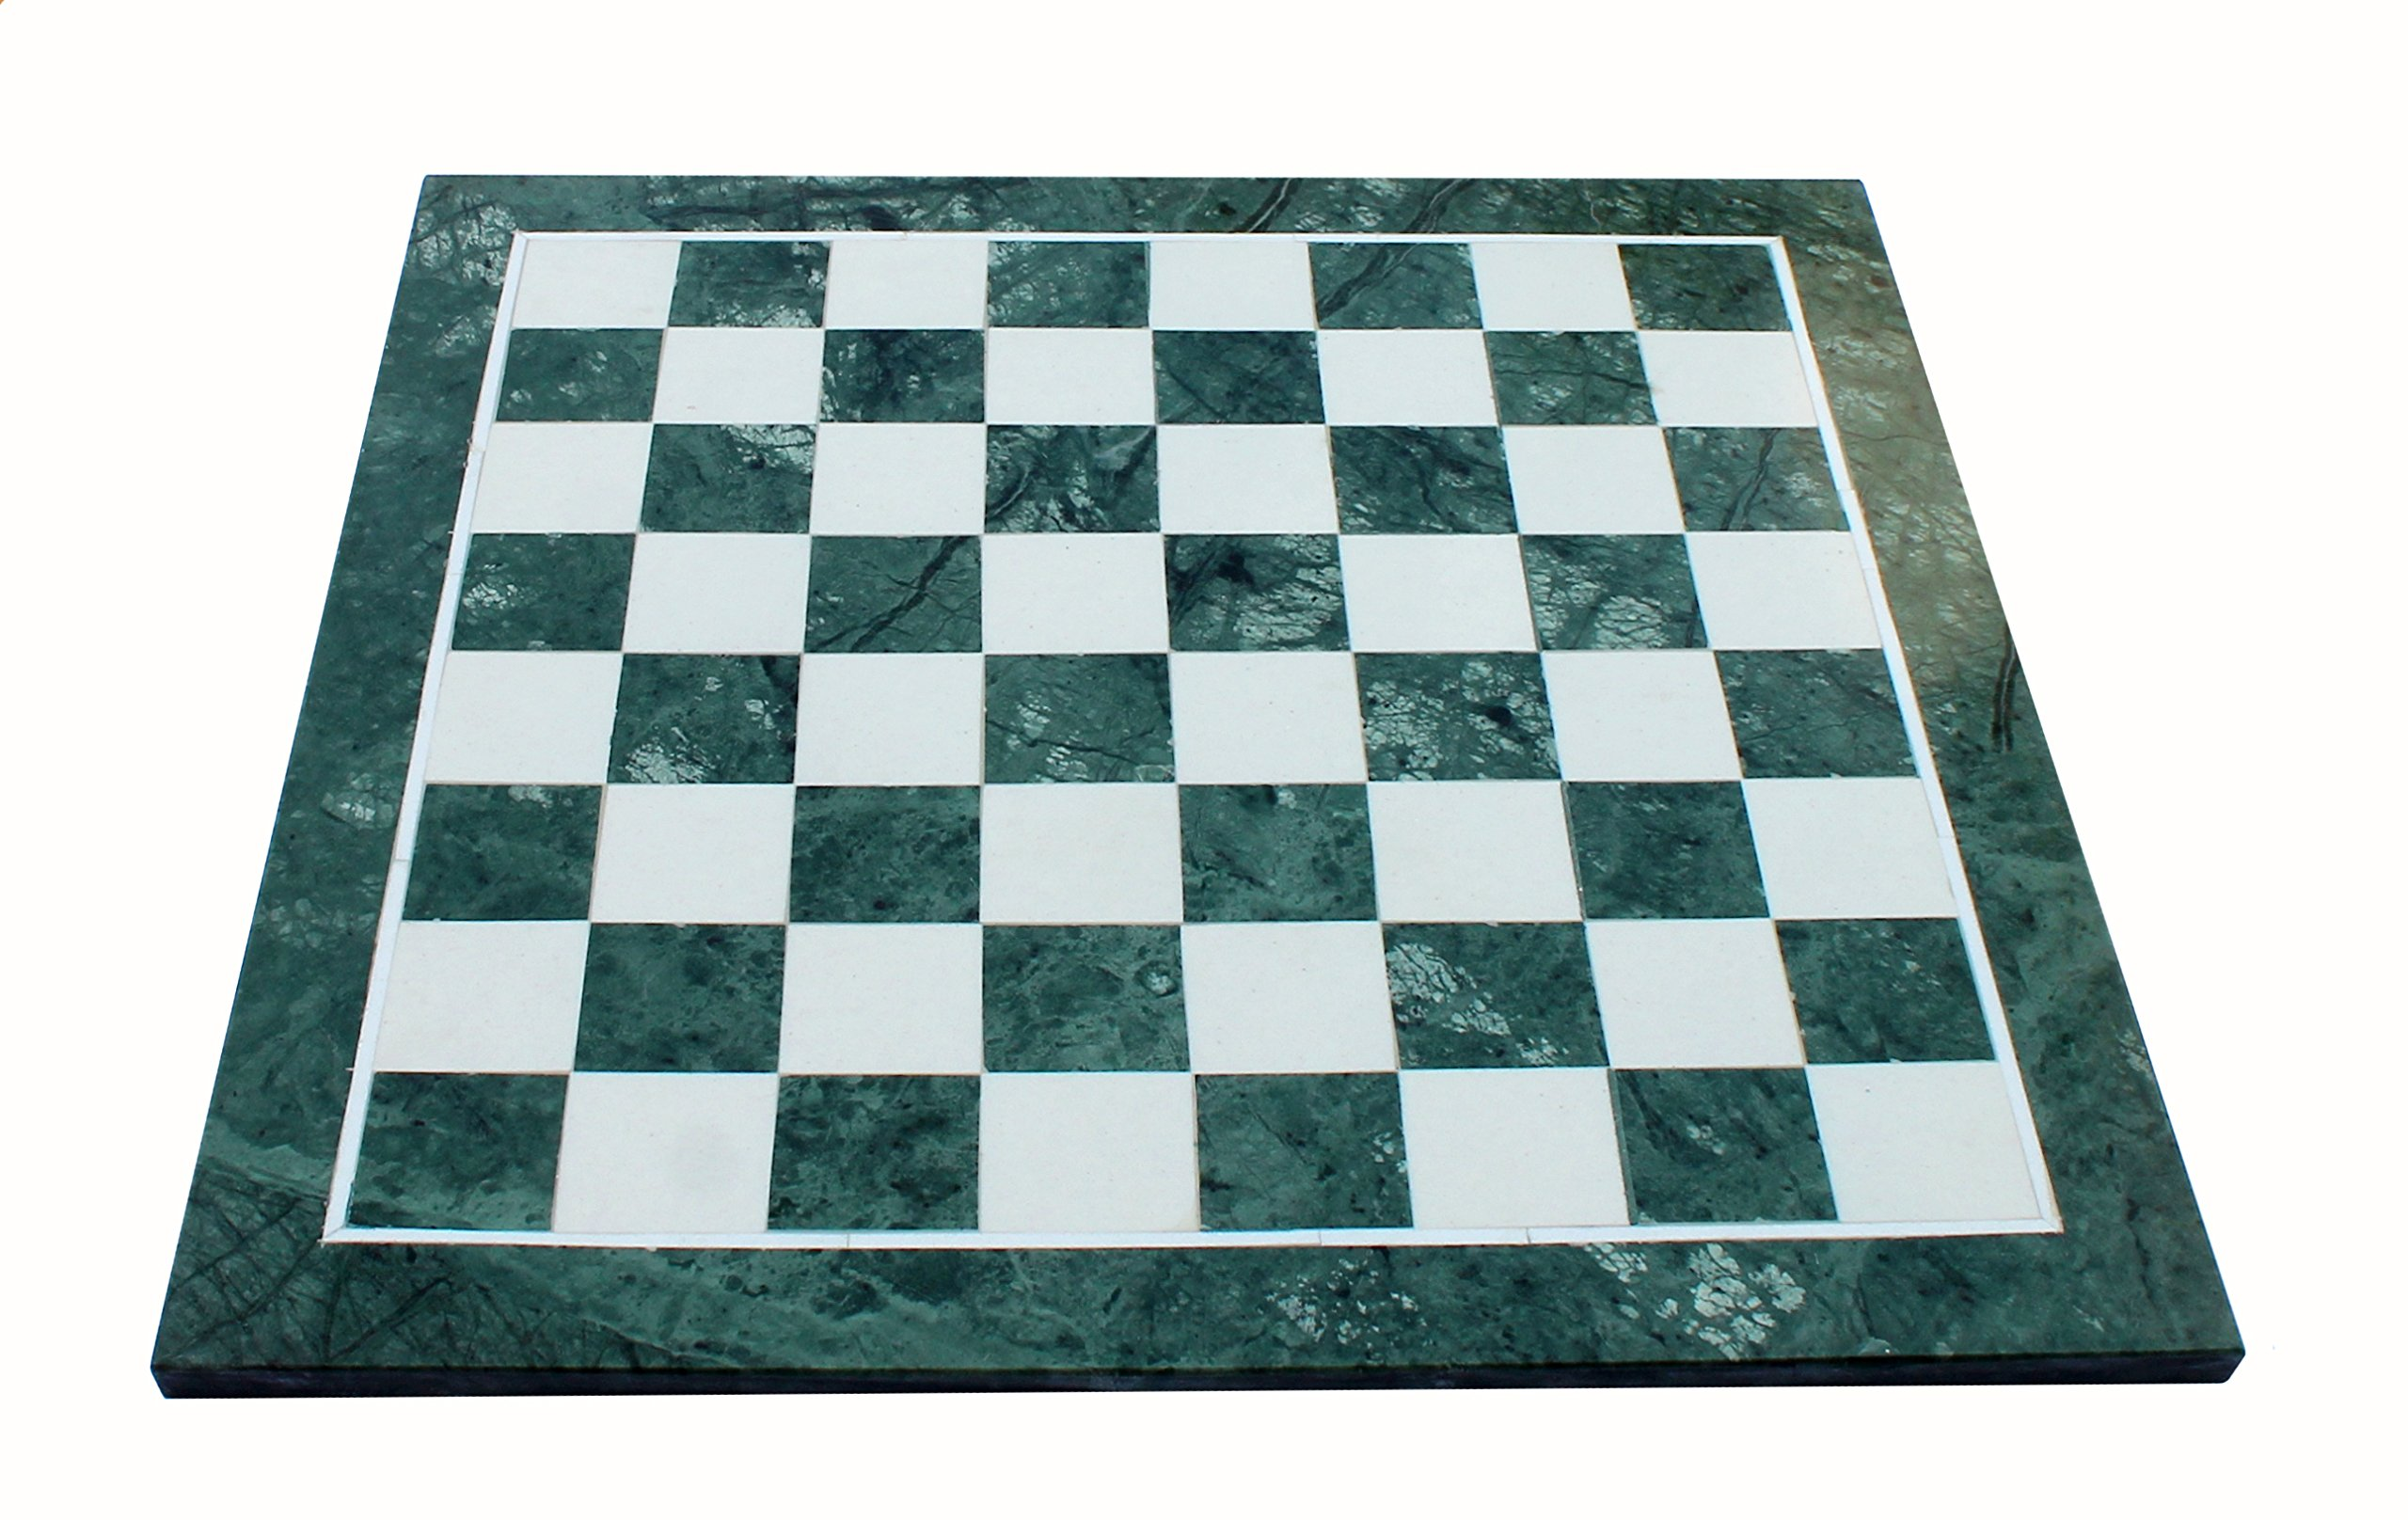 StonKraft 20'' X 20'' Collectible Green Marble Stone Large Chess Board Without Pieces - Appropriate Wooden & Brass Chess Pieces Chessmen separately availabe by StonKraft Brand by StonKraft (Image #1)